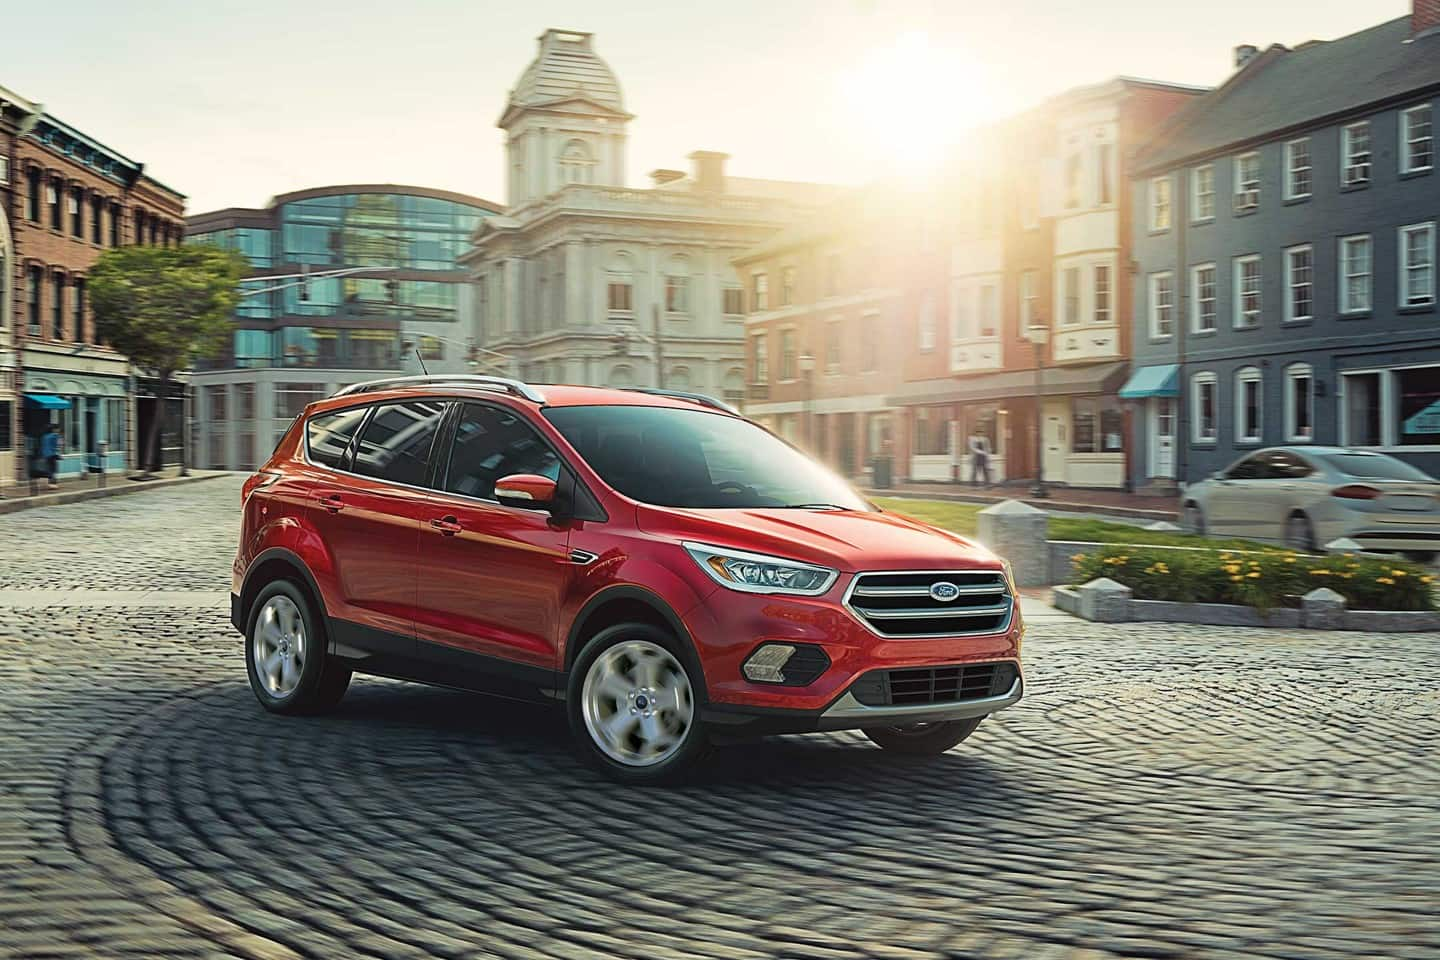 2019 Ford Escape Leasing near Mesquite, TX